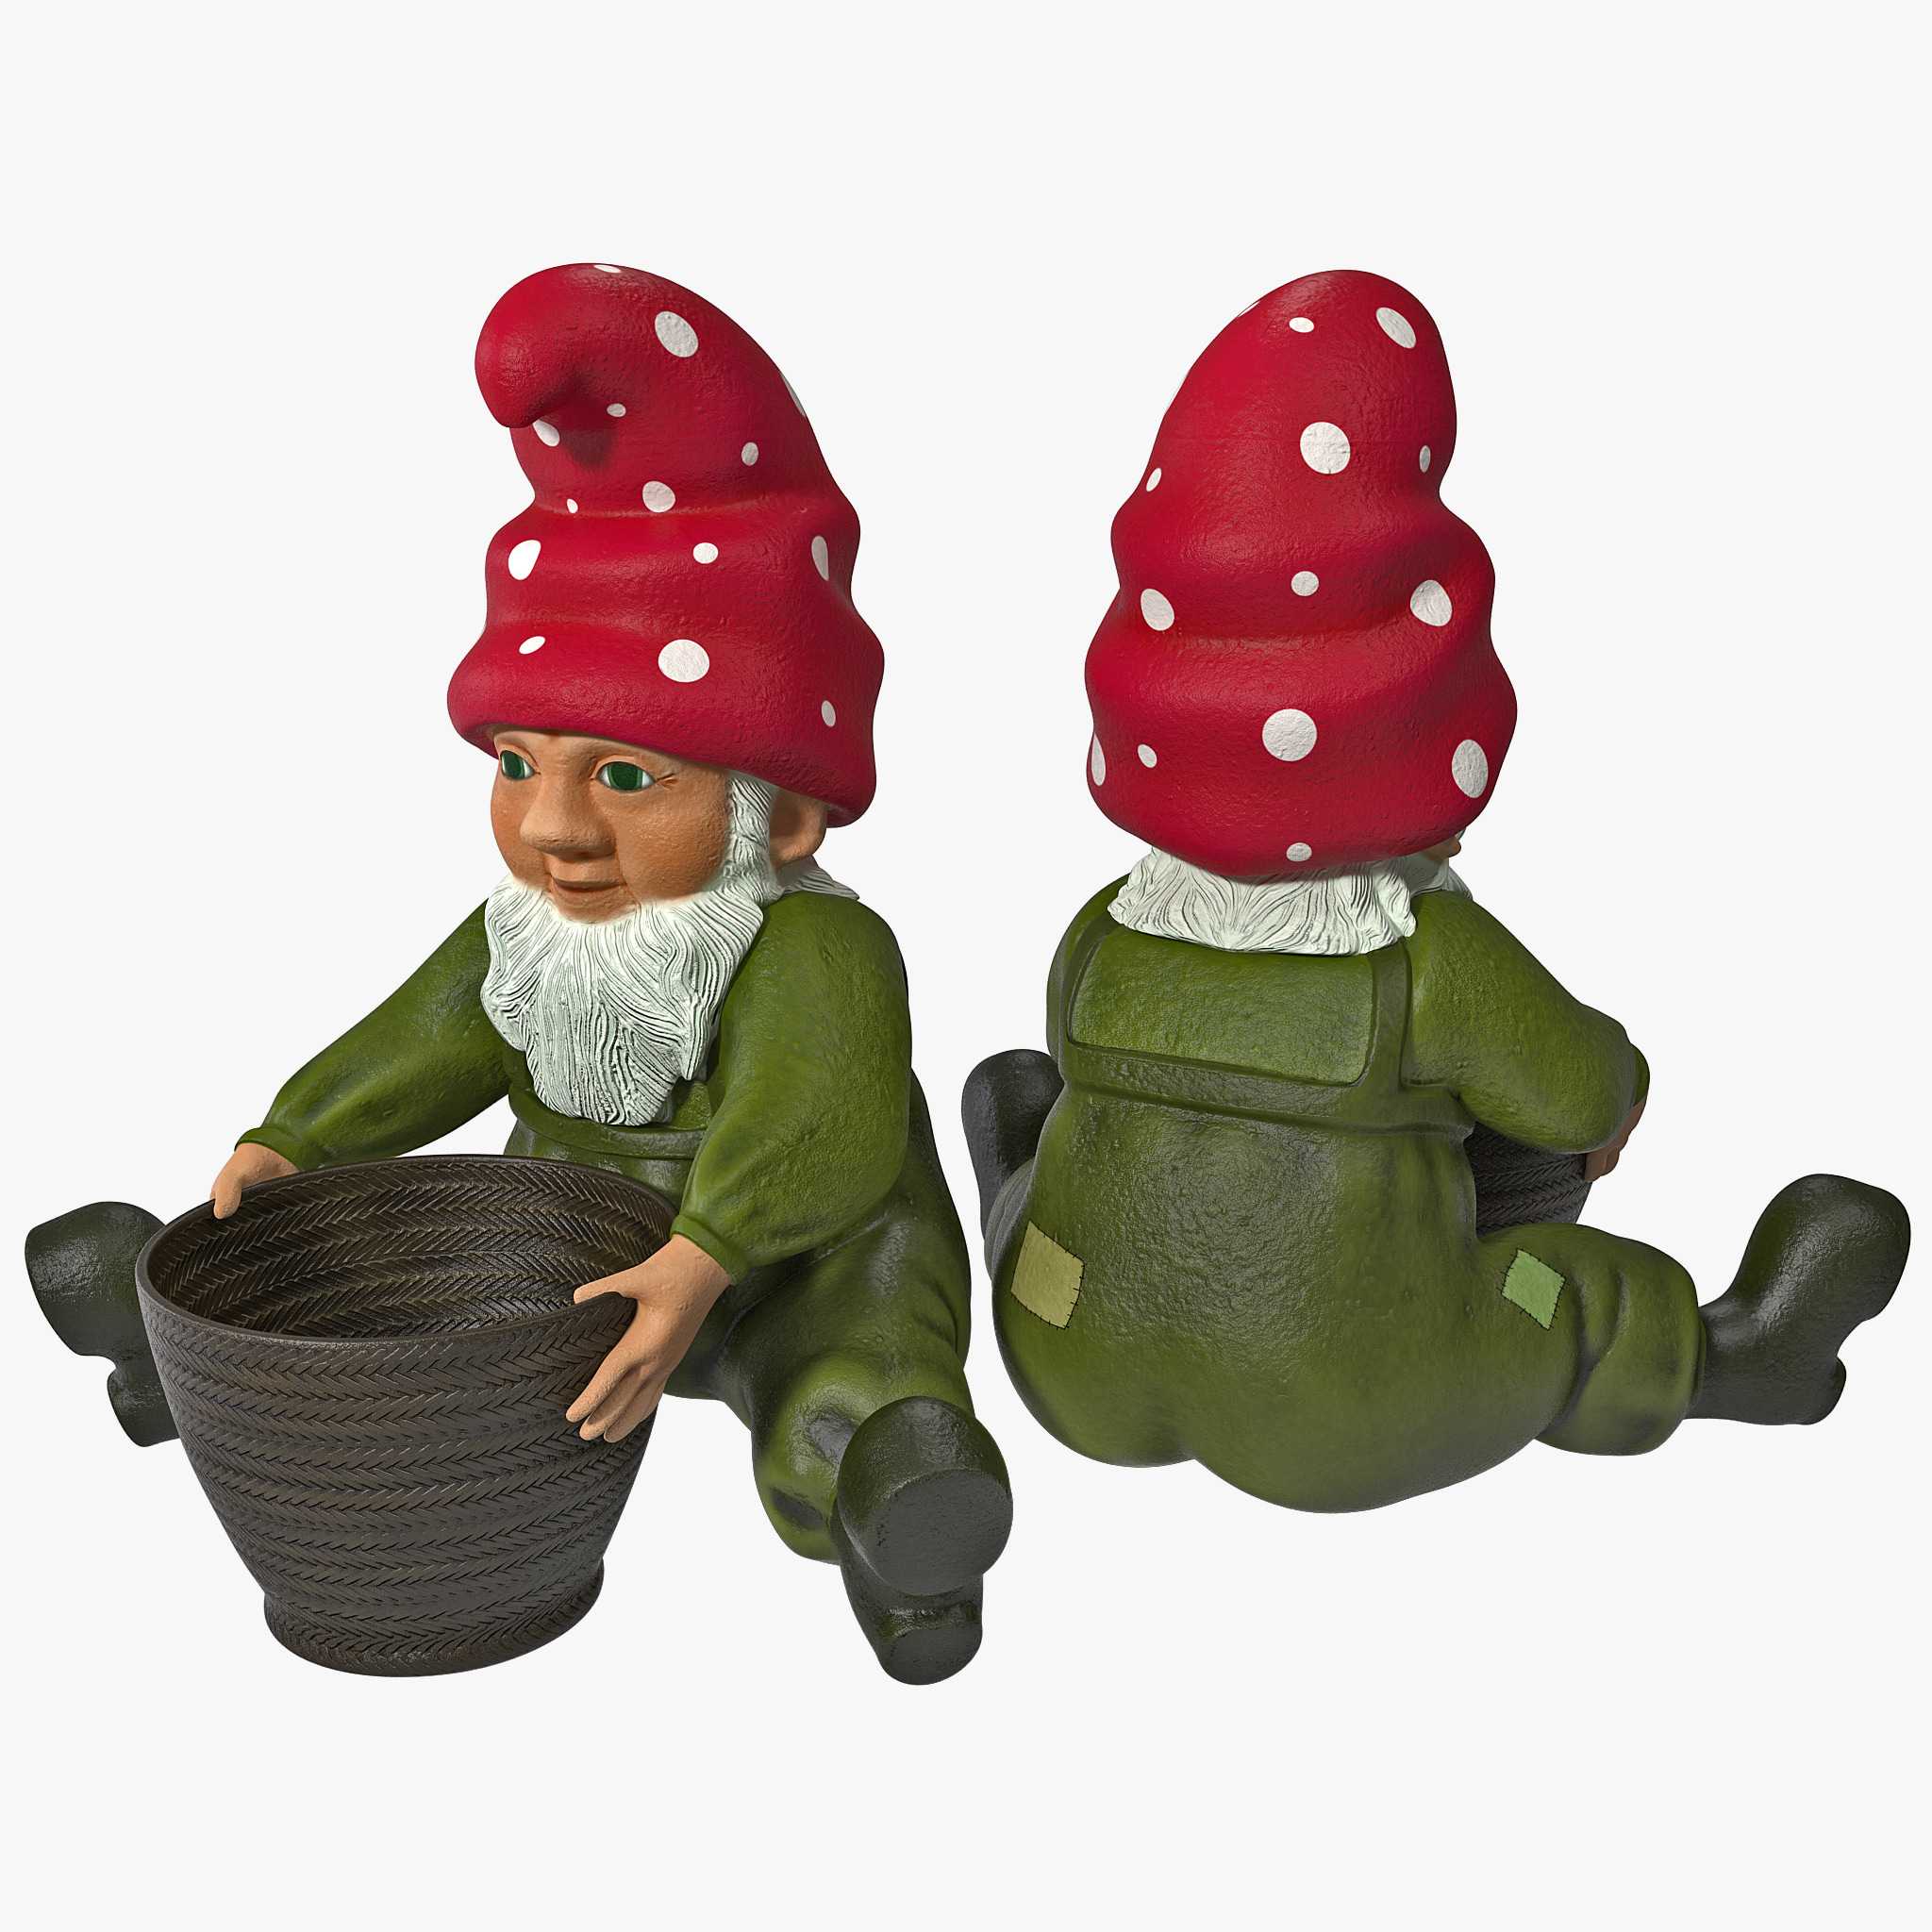 Lawn Gnome with Basket